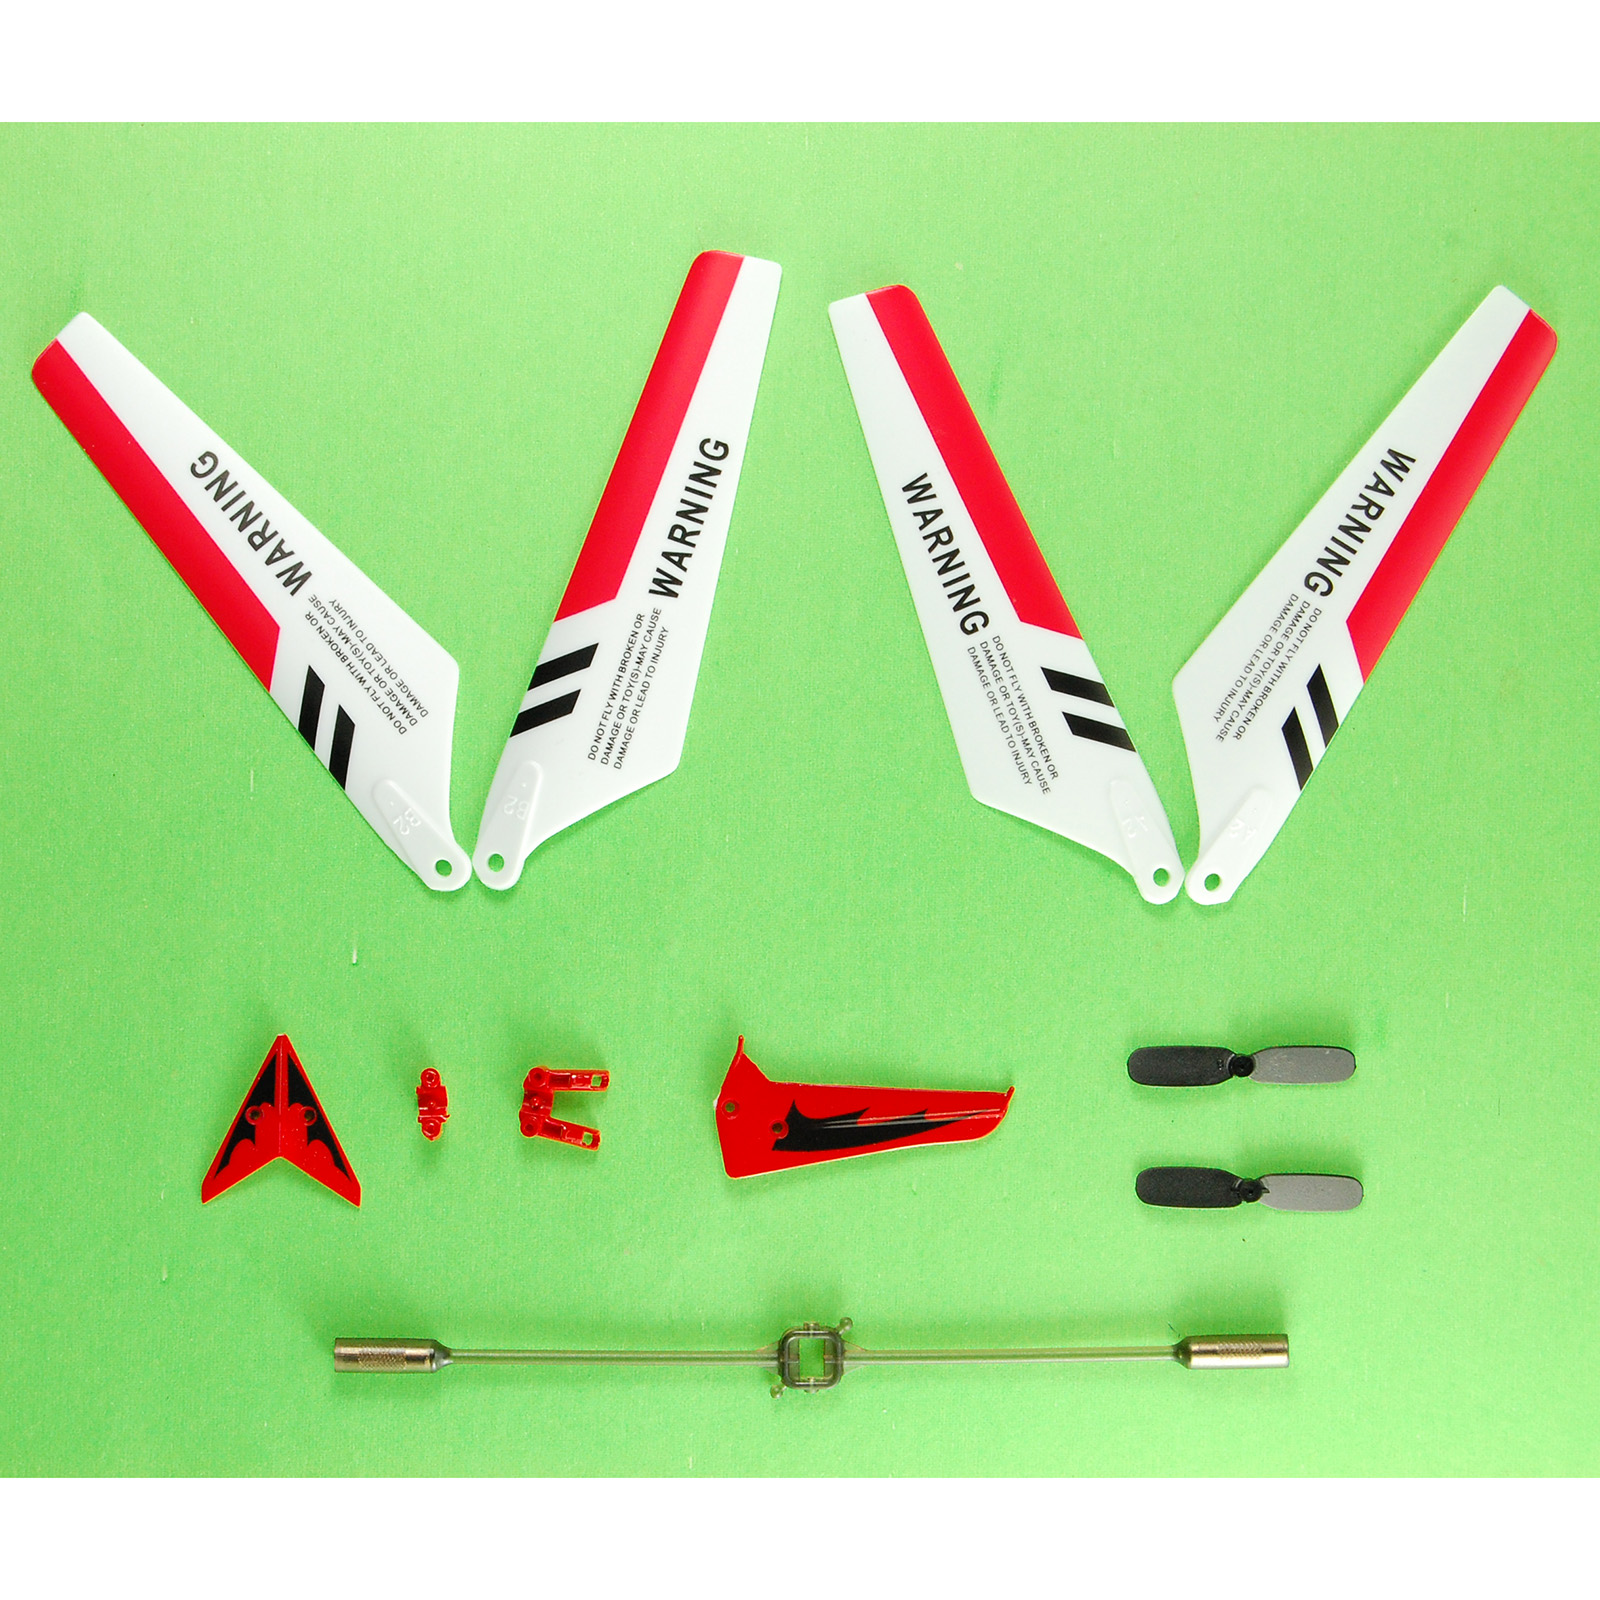 Syma S107 Full Replacement Parts Set for Syma S107 RC Helicopter Main Blades, Tail... by